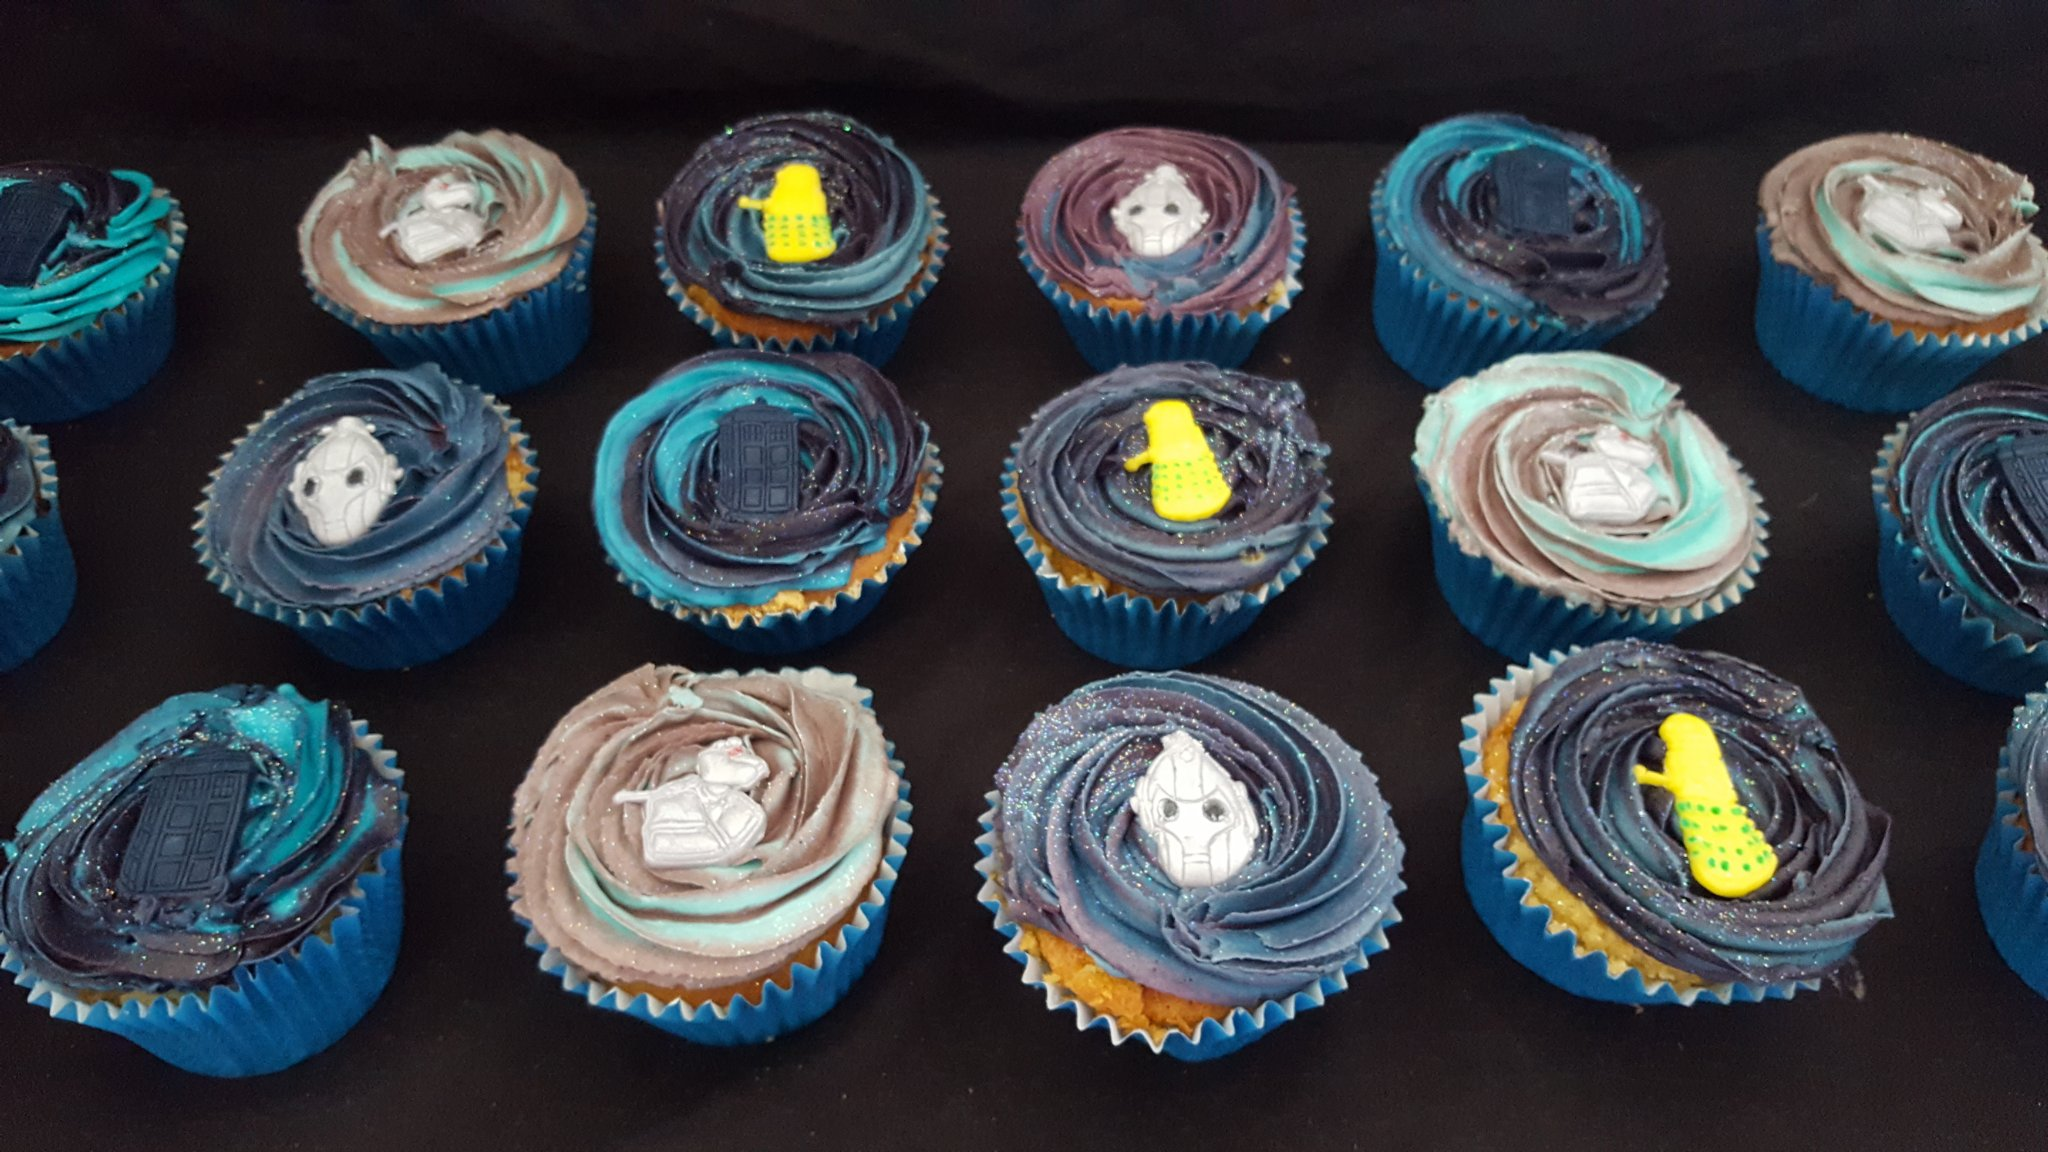 Dr Who cupcakes